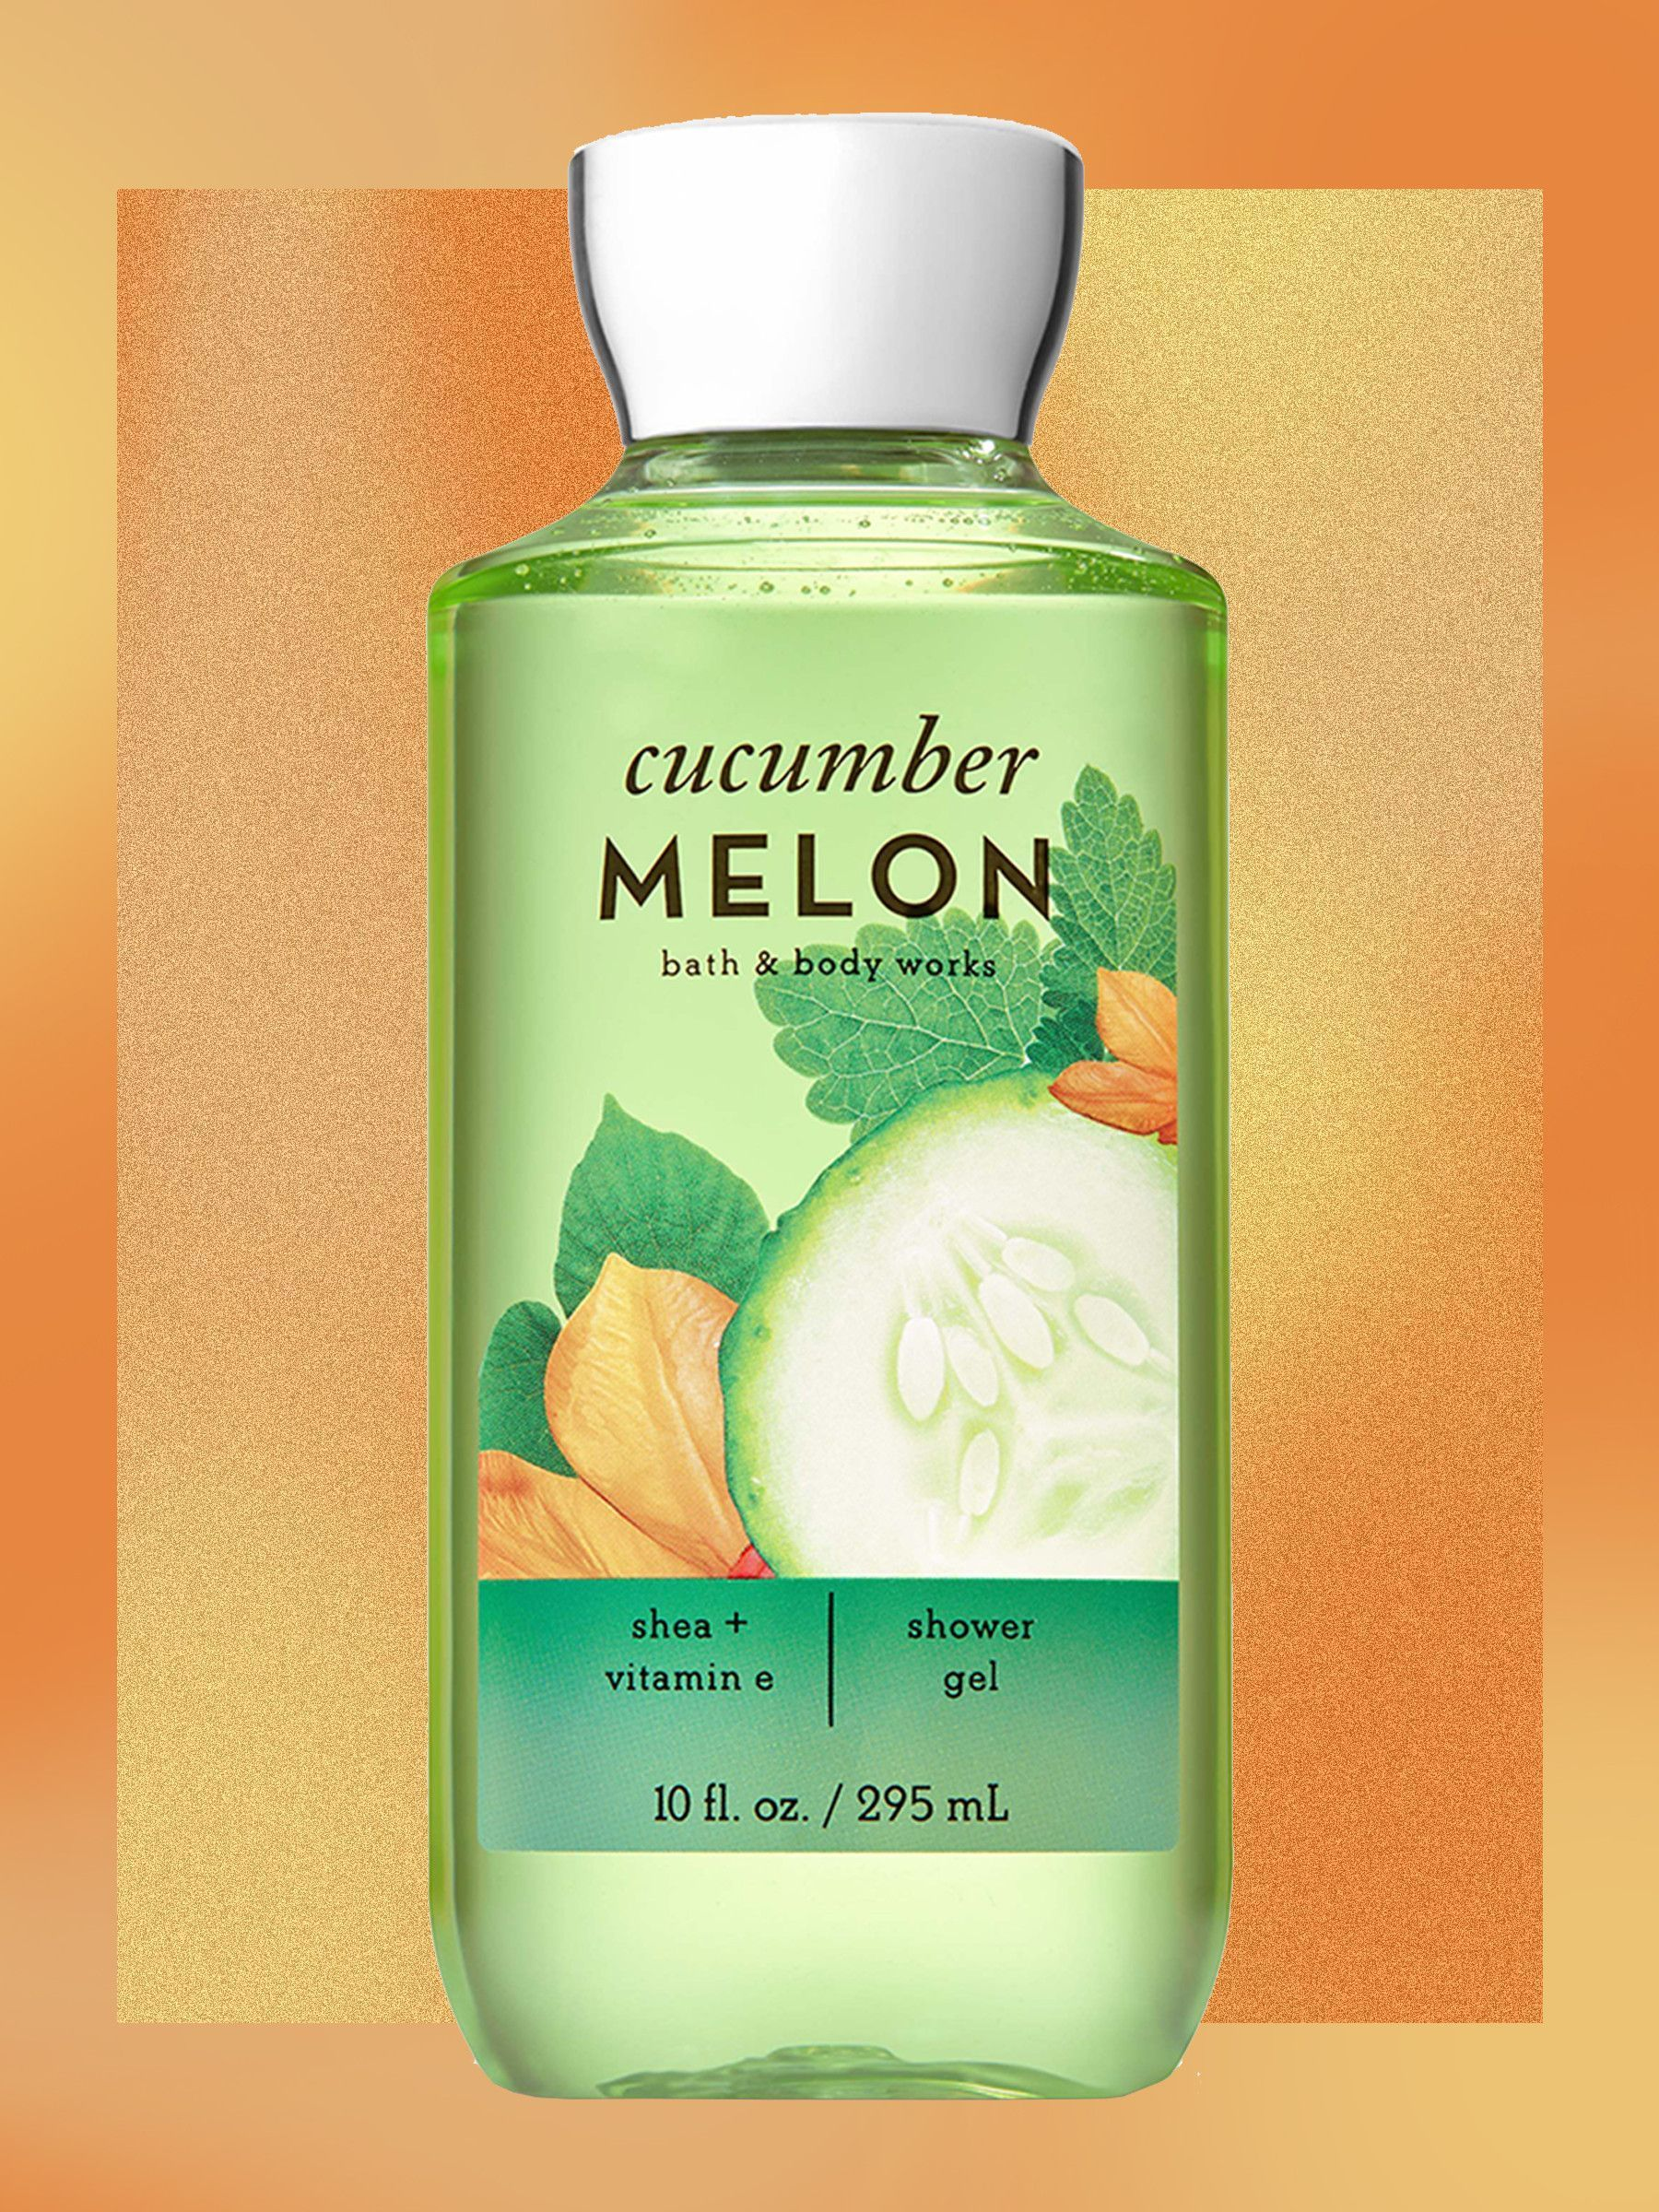 Collection CUCUMBER MELON Shower Gel Bath & Body Works Just Dropped The Biggest Sale Of 2019+#refinery29Bath & Body Works Just Dropped The Biggest Sale Of 2019+#refinery29